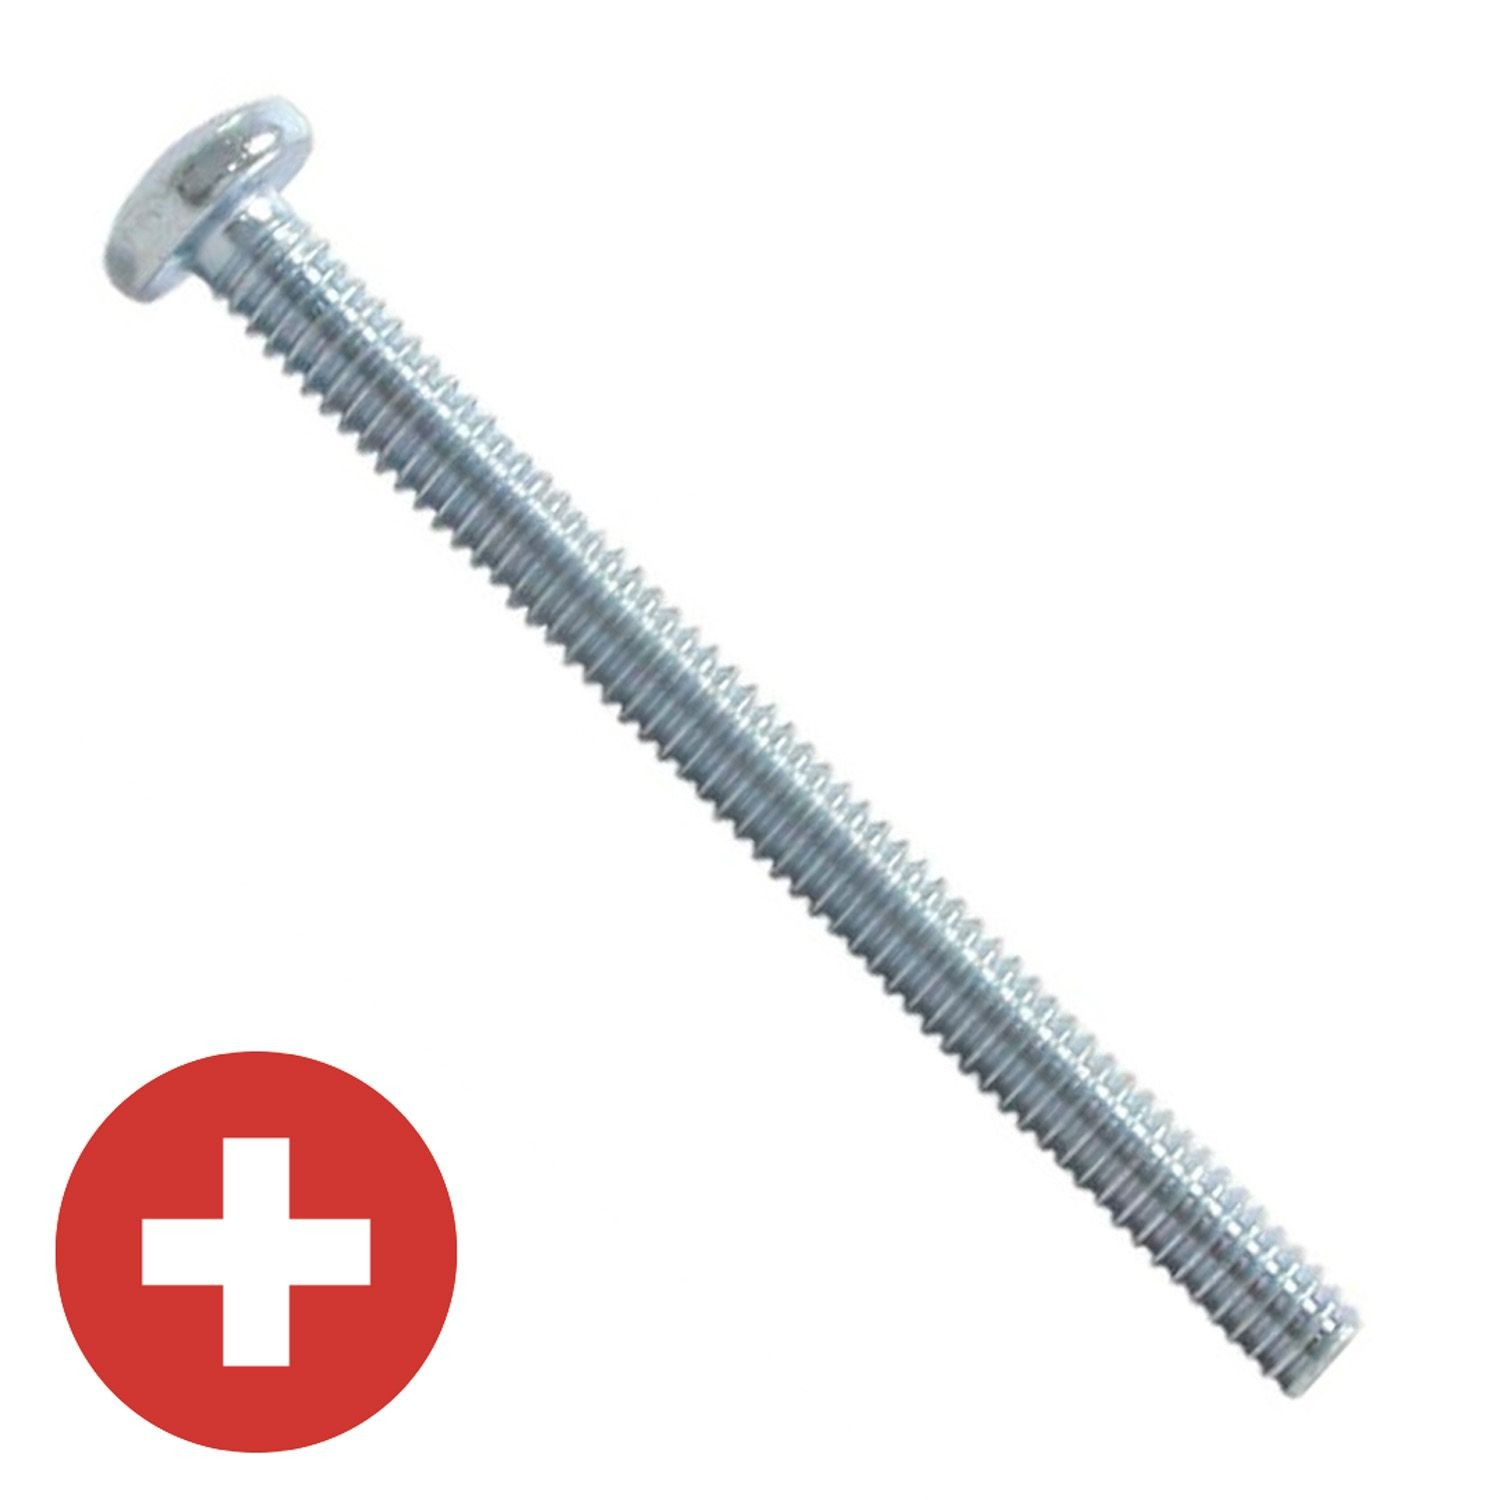 "#10-32 x 1-1/4"" Zinc Plated Phillips Pan Head Machine Screw"